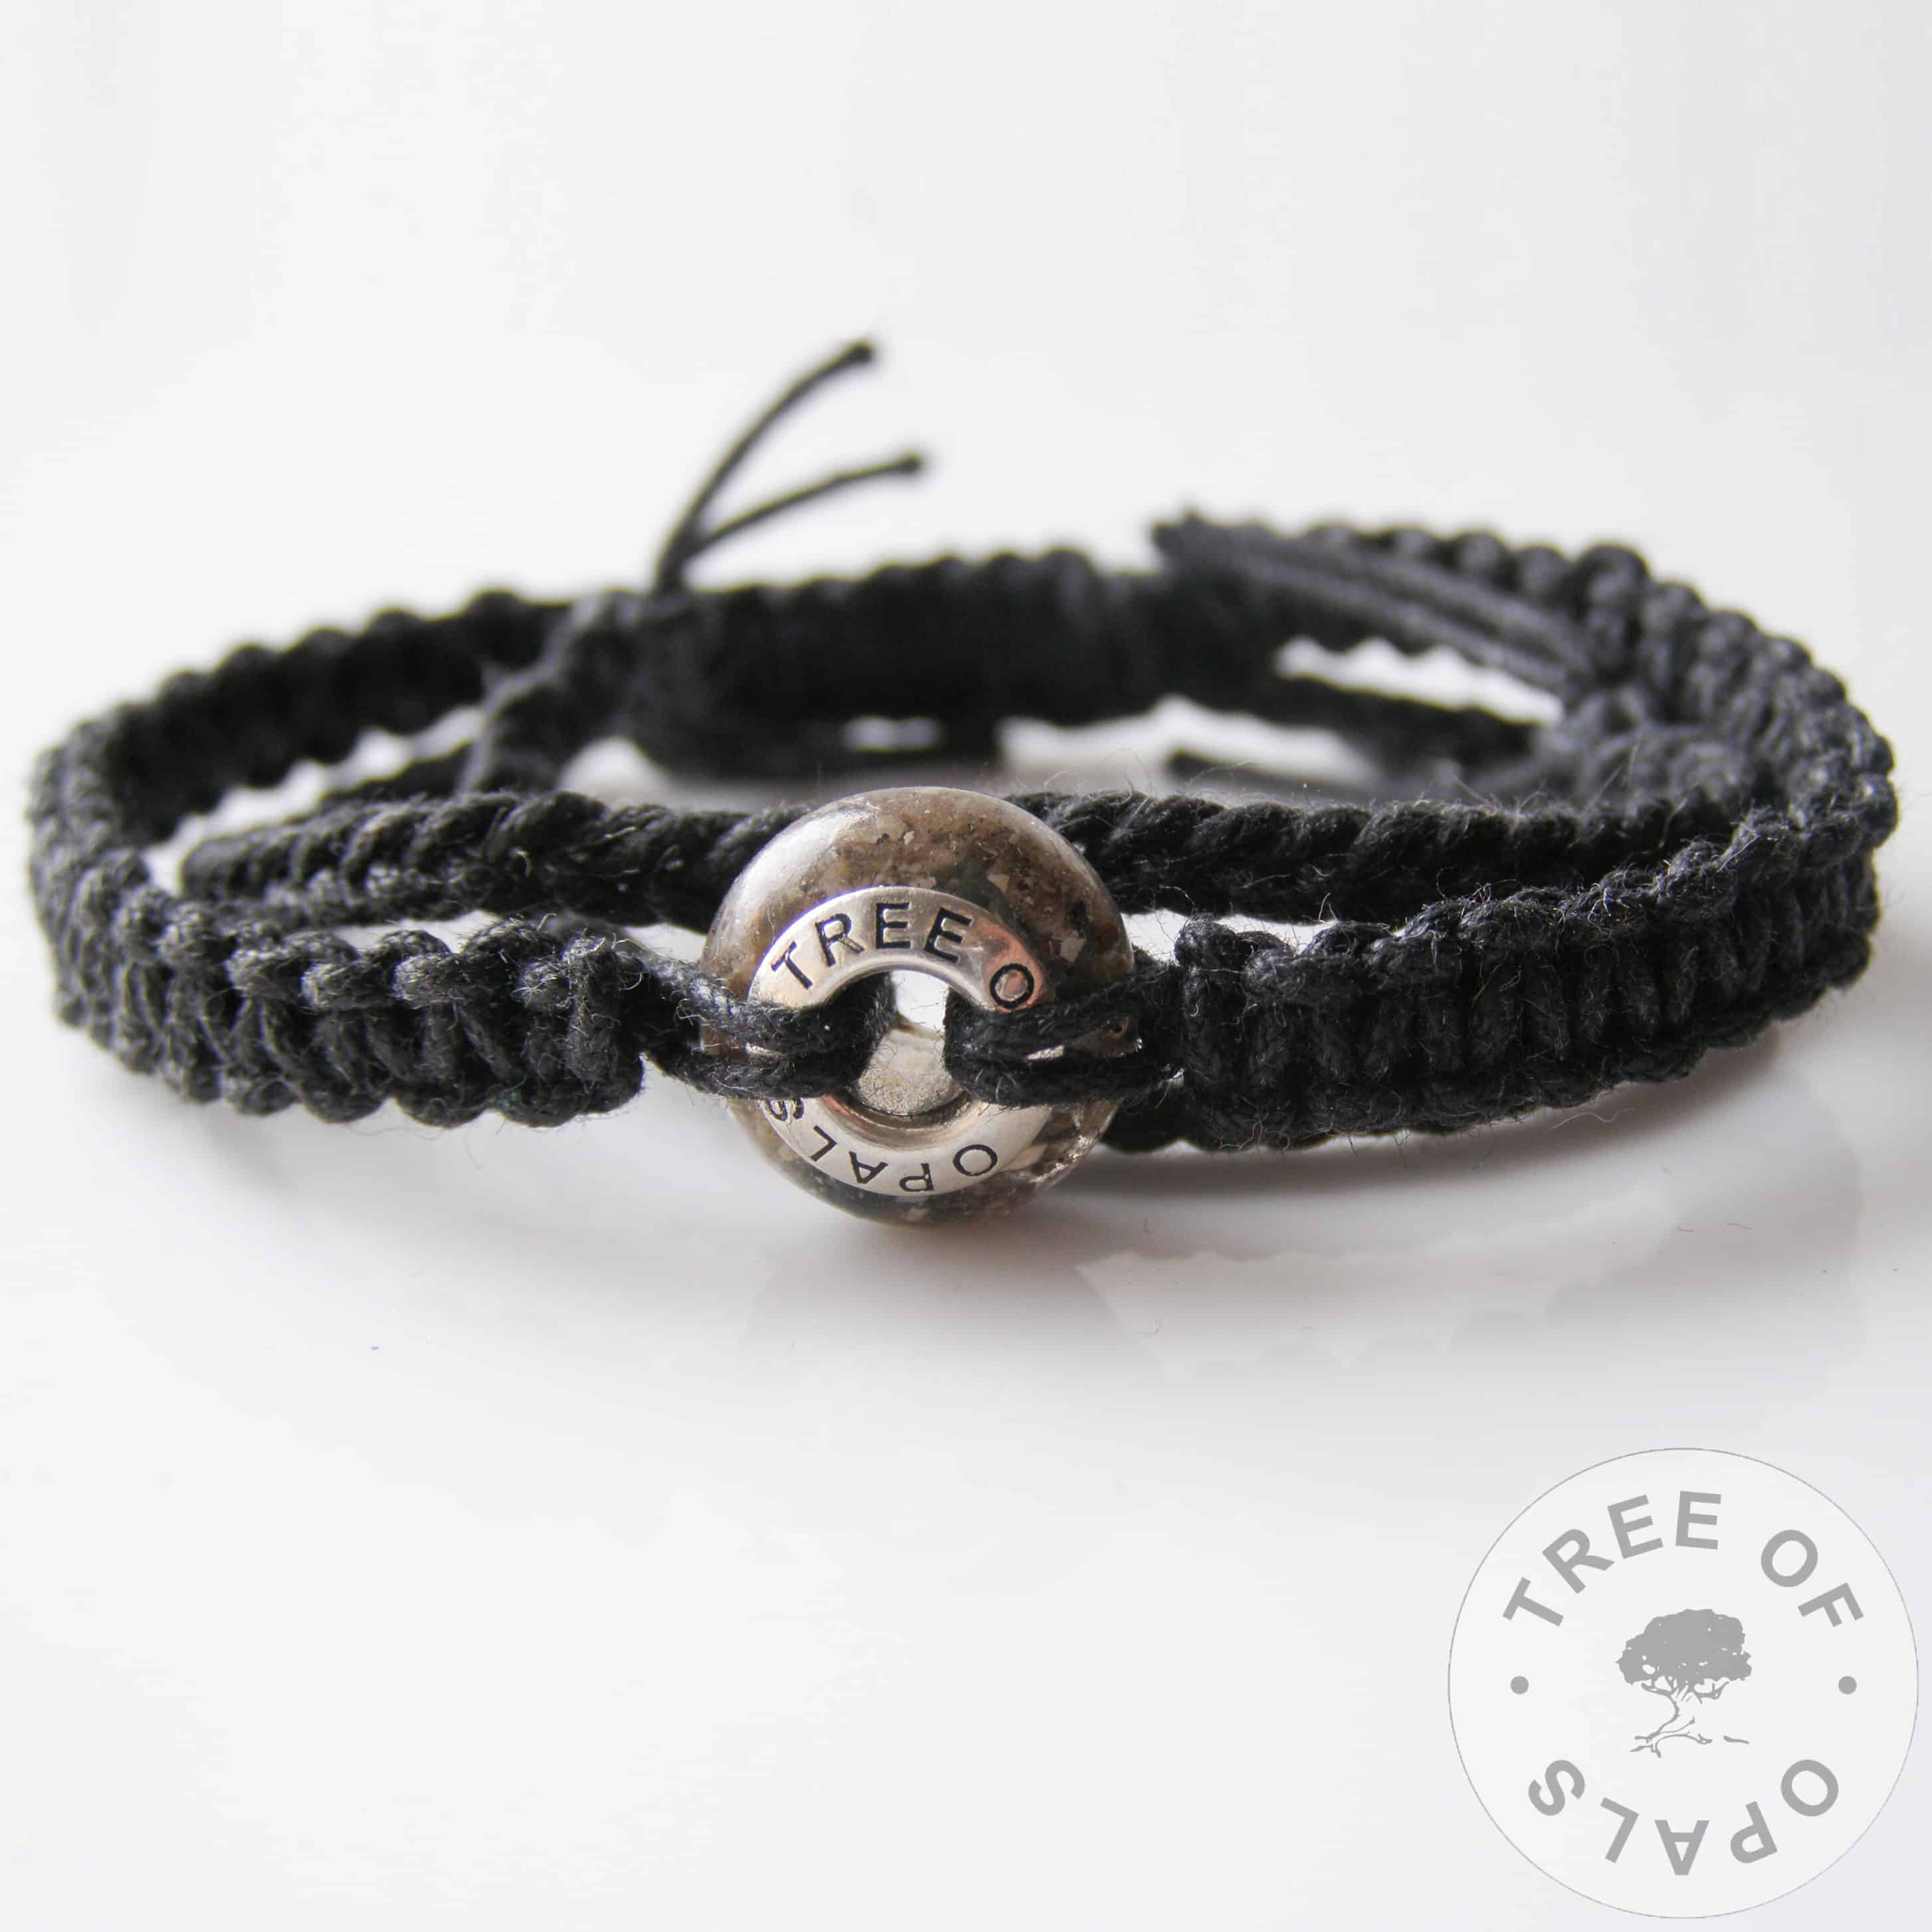 macrame surfer bracelet with cremation ash charm, black wax cord knotted adjustable men's unisex masculine bracelet shown with a cremation ash charm bead with blue topaz pro bono